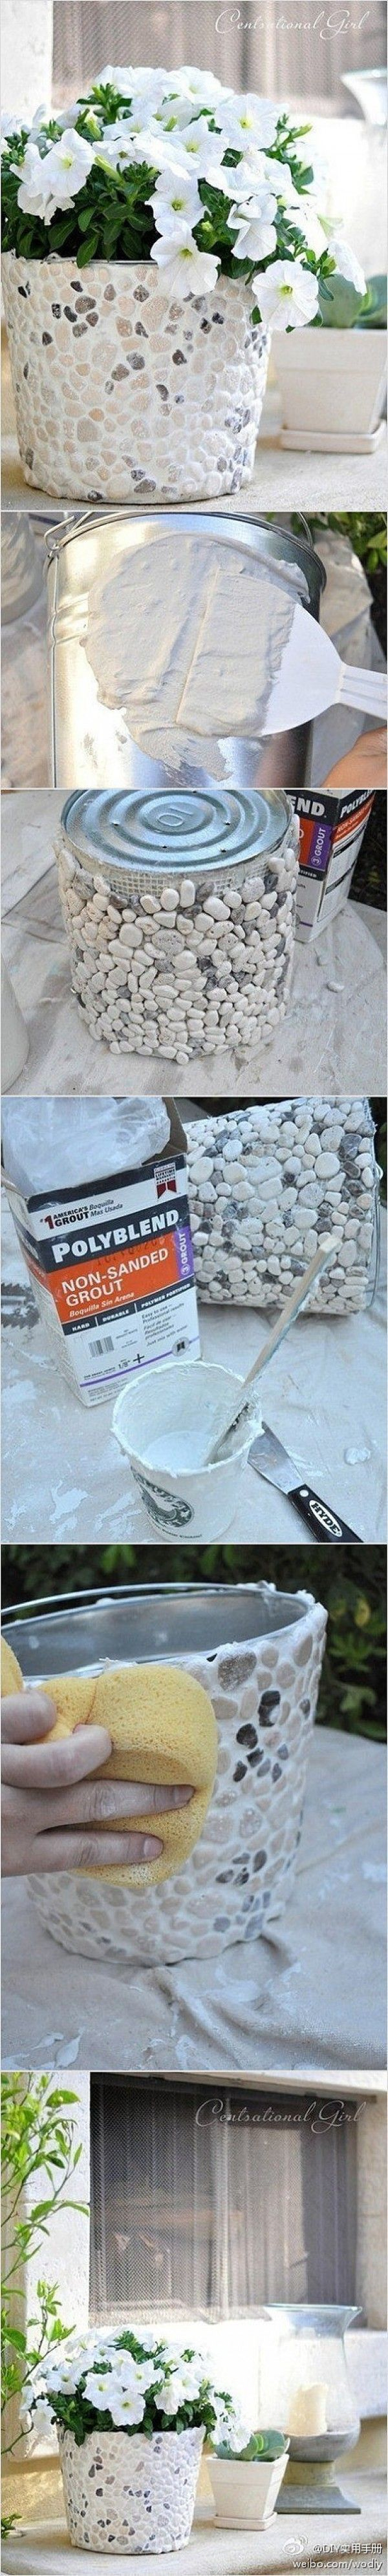 Easy to make DIY rock covered vase with tutorial @istandarddesign